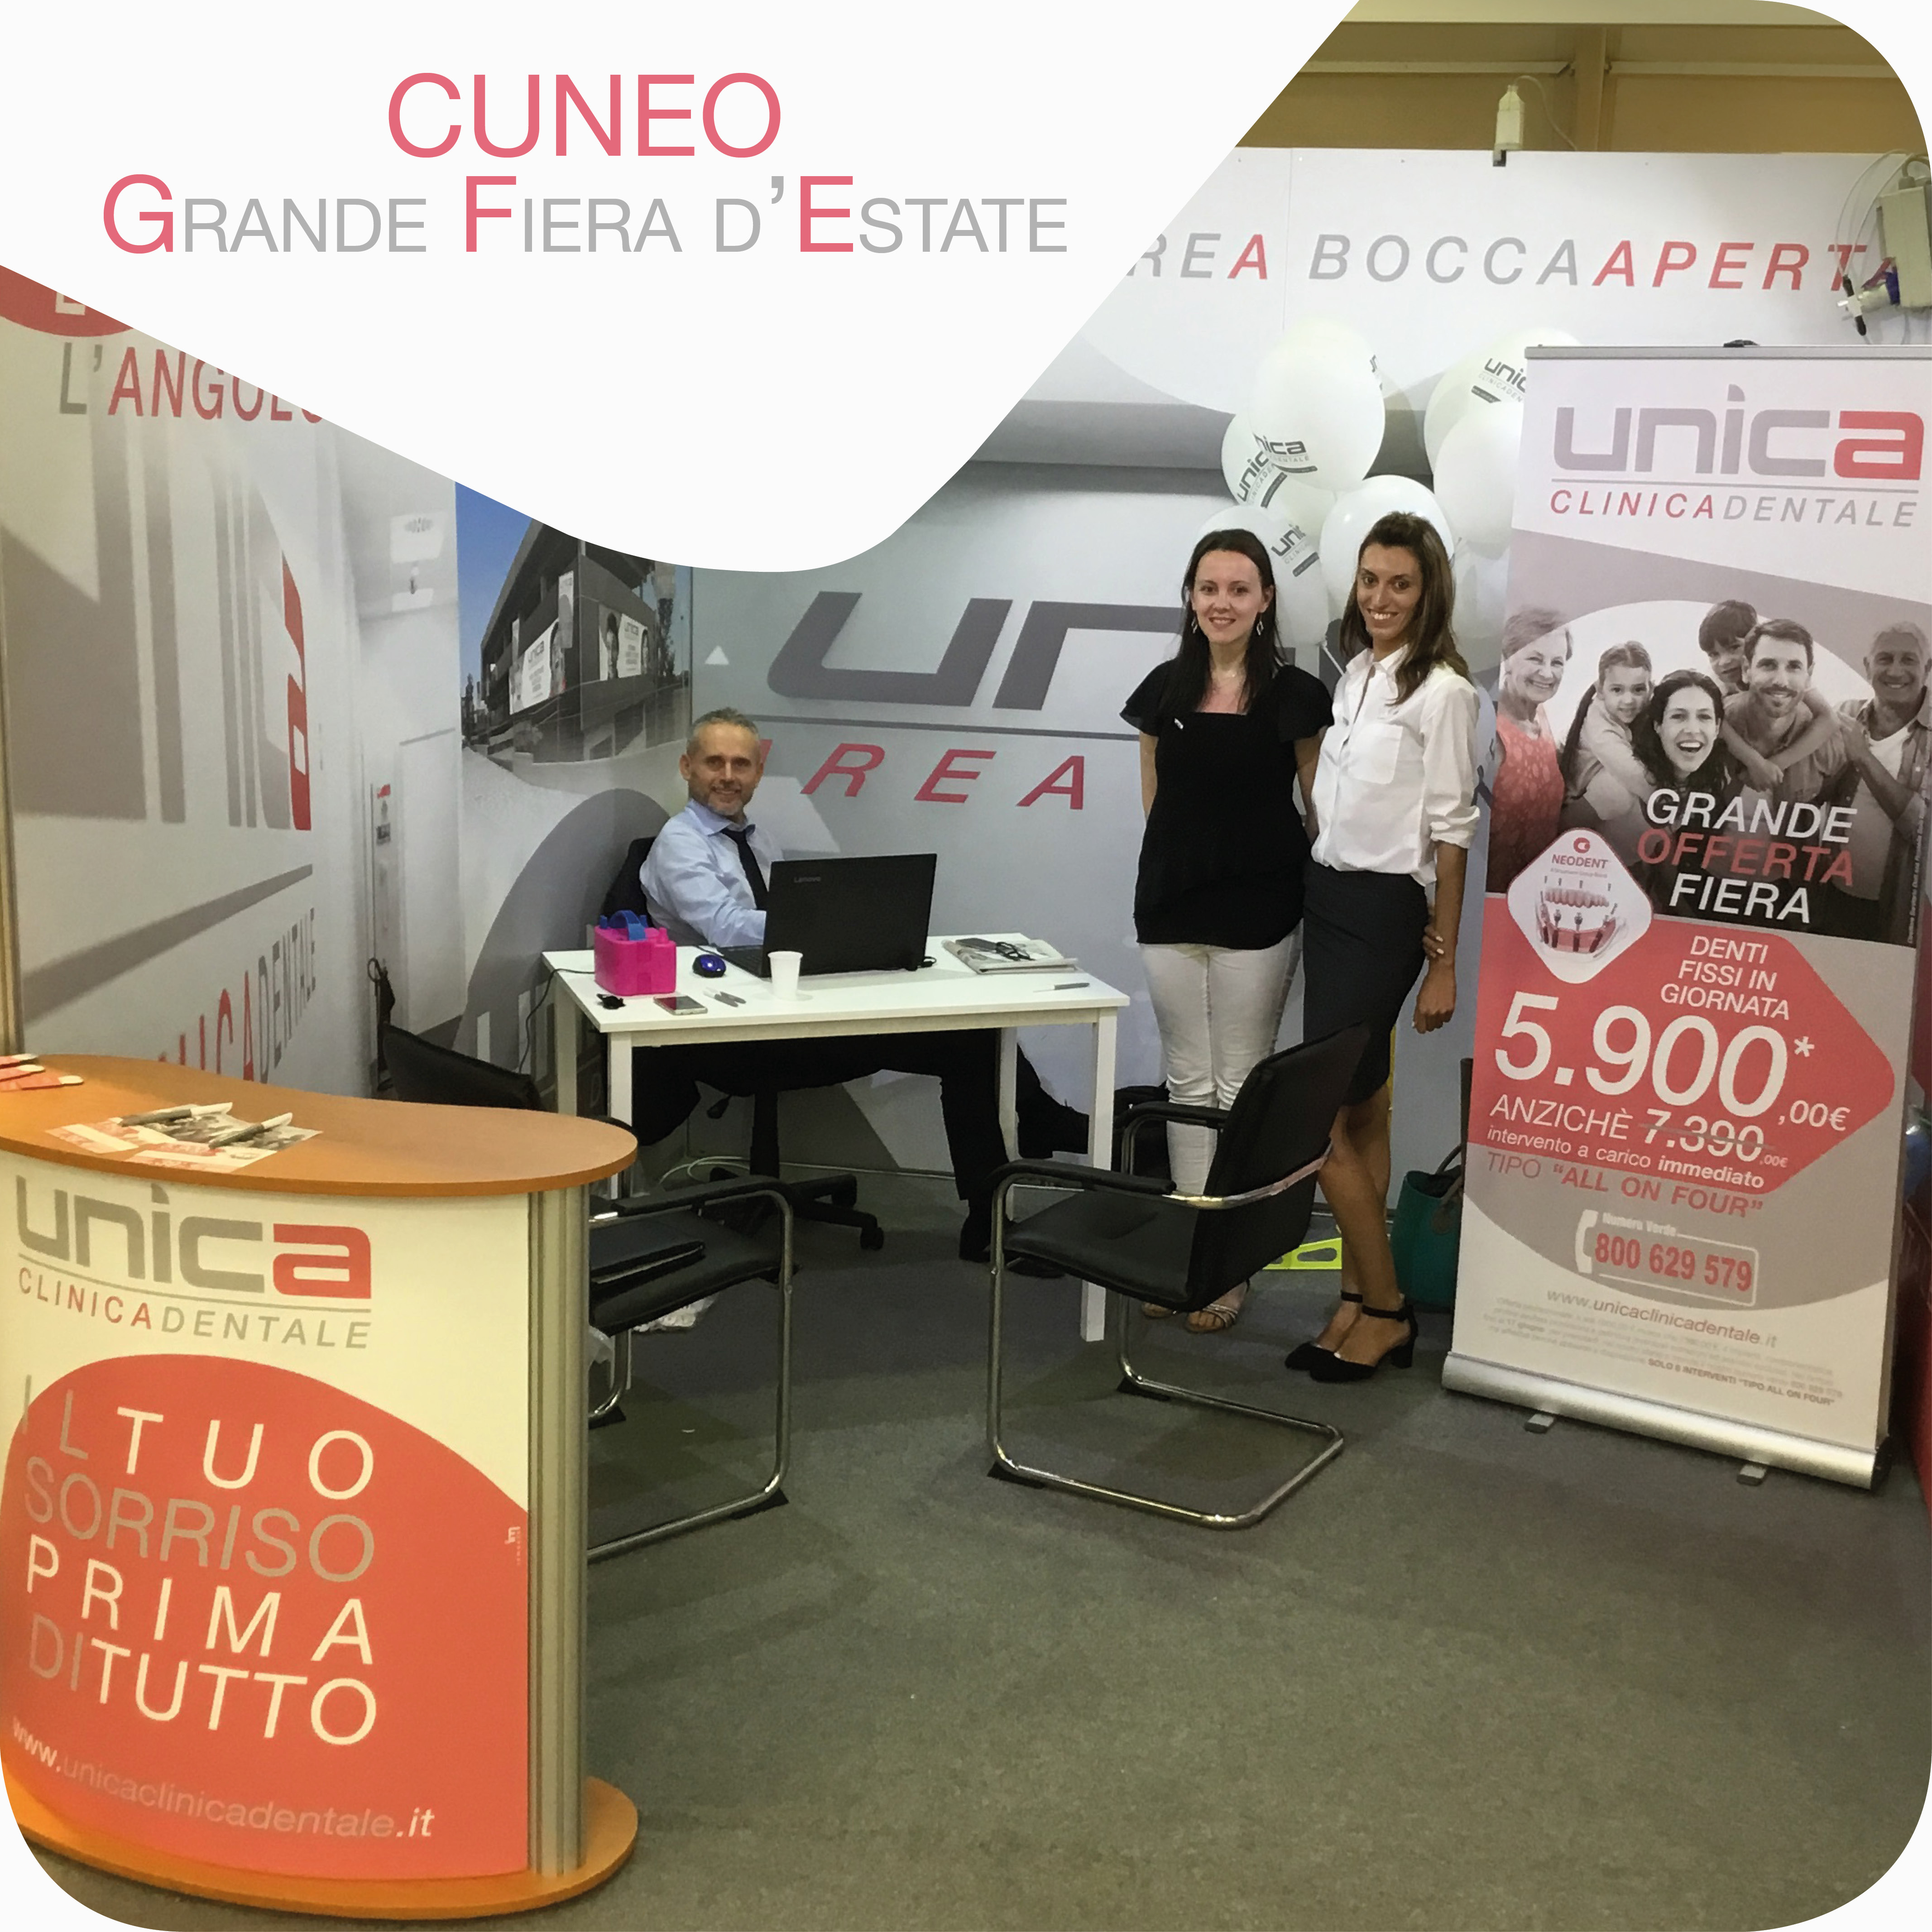 Unica alla Grande Fiera D'estate a Cuneo